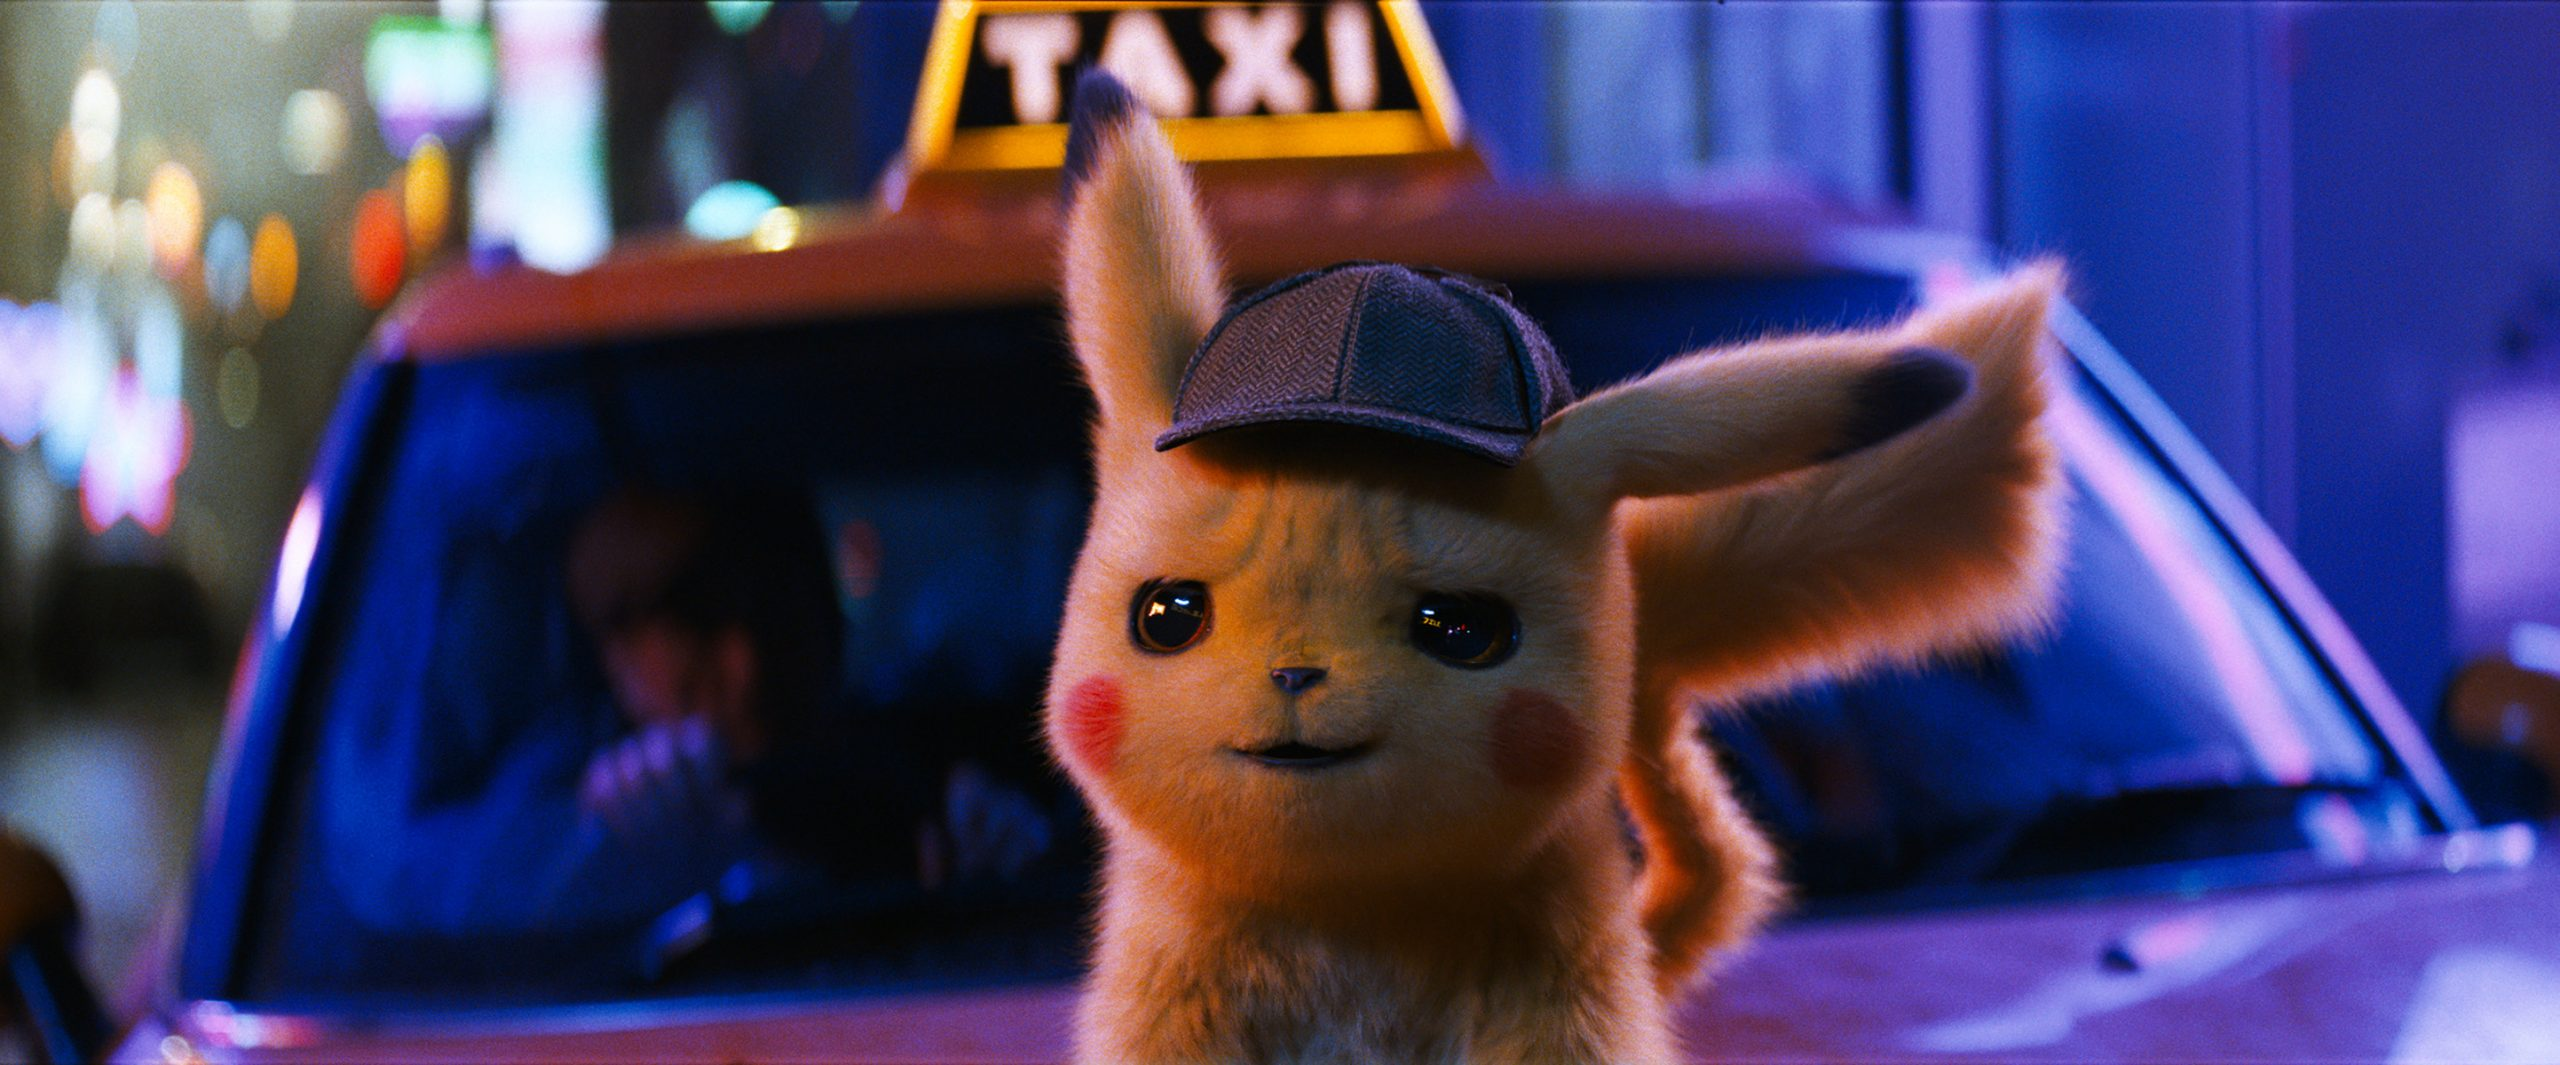 'Detective Pikachu' Posters & Stills Added